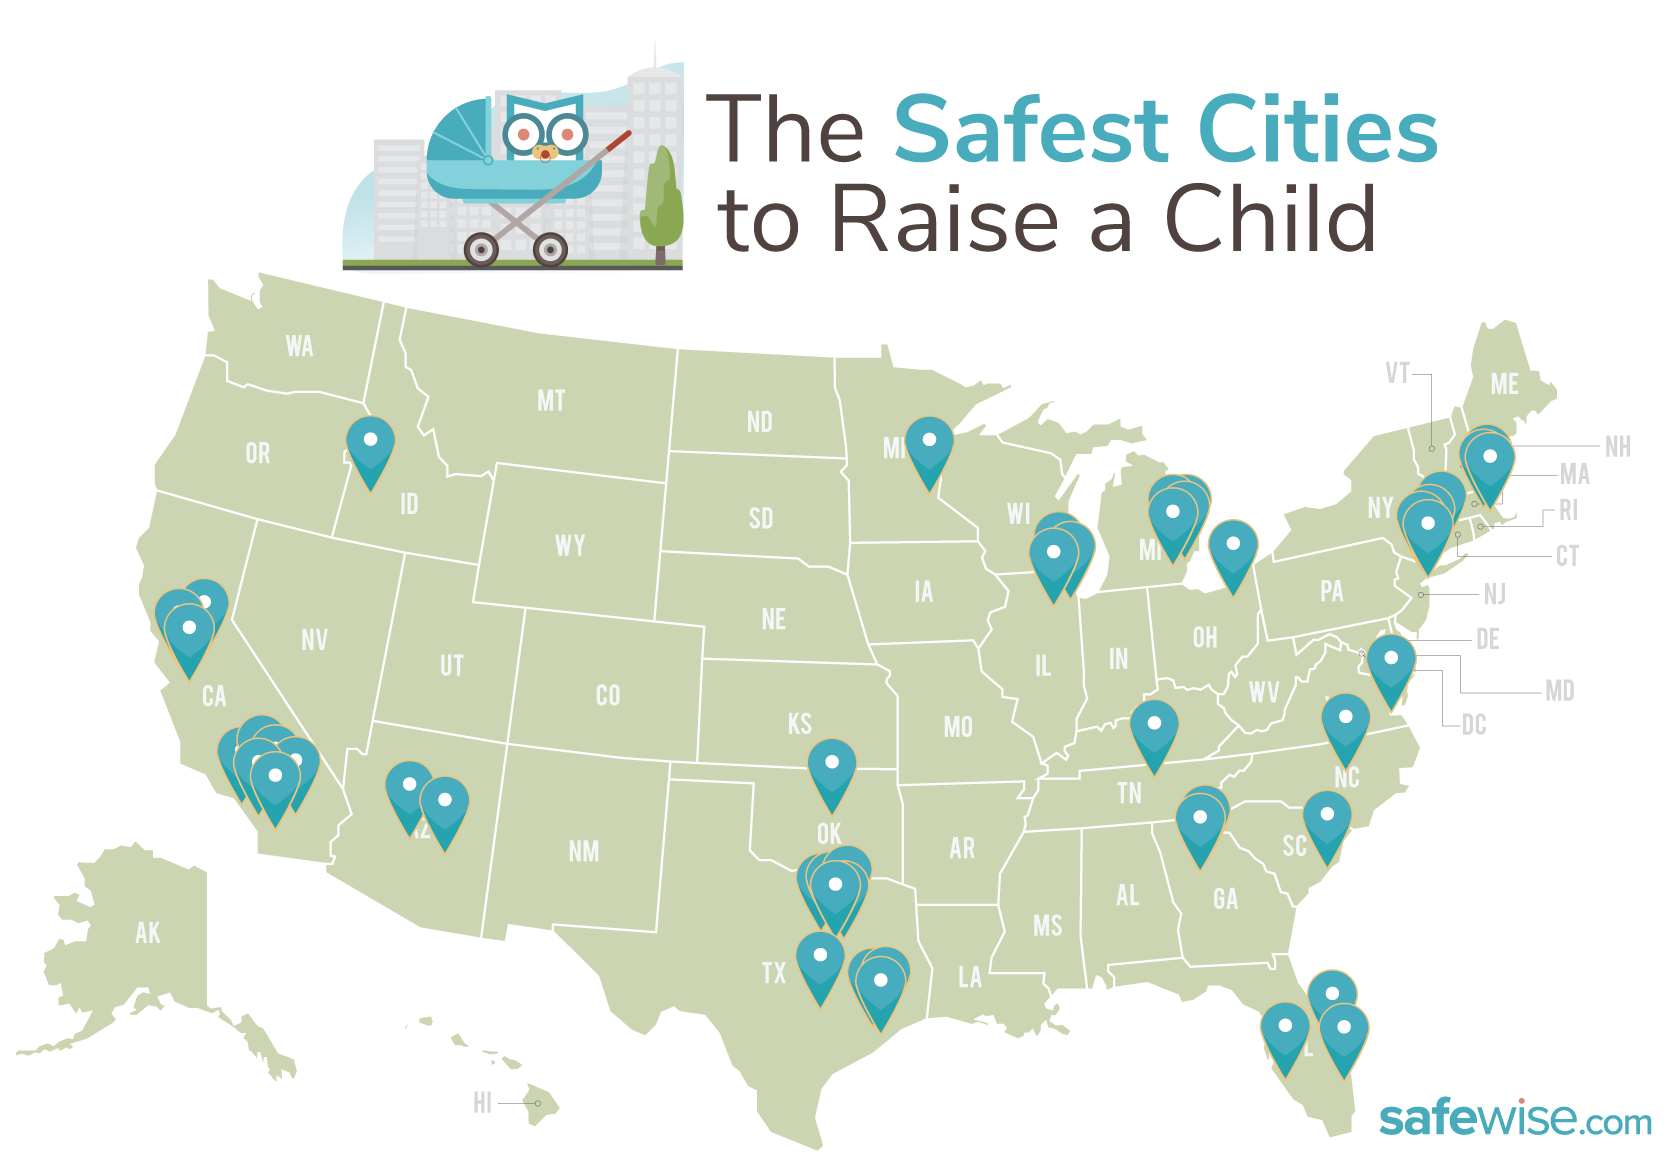 Port St. Lucie ranks in the Top 20 'America's Safest Cities to Raise a Child,' study finds